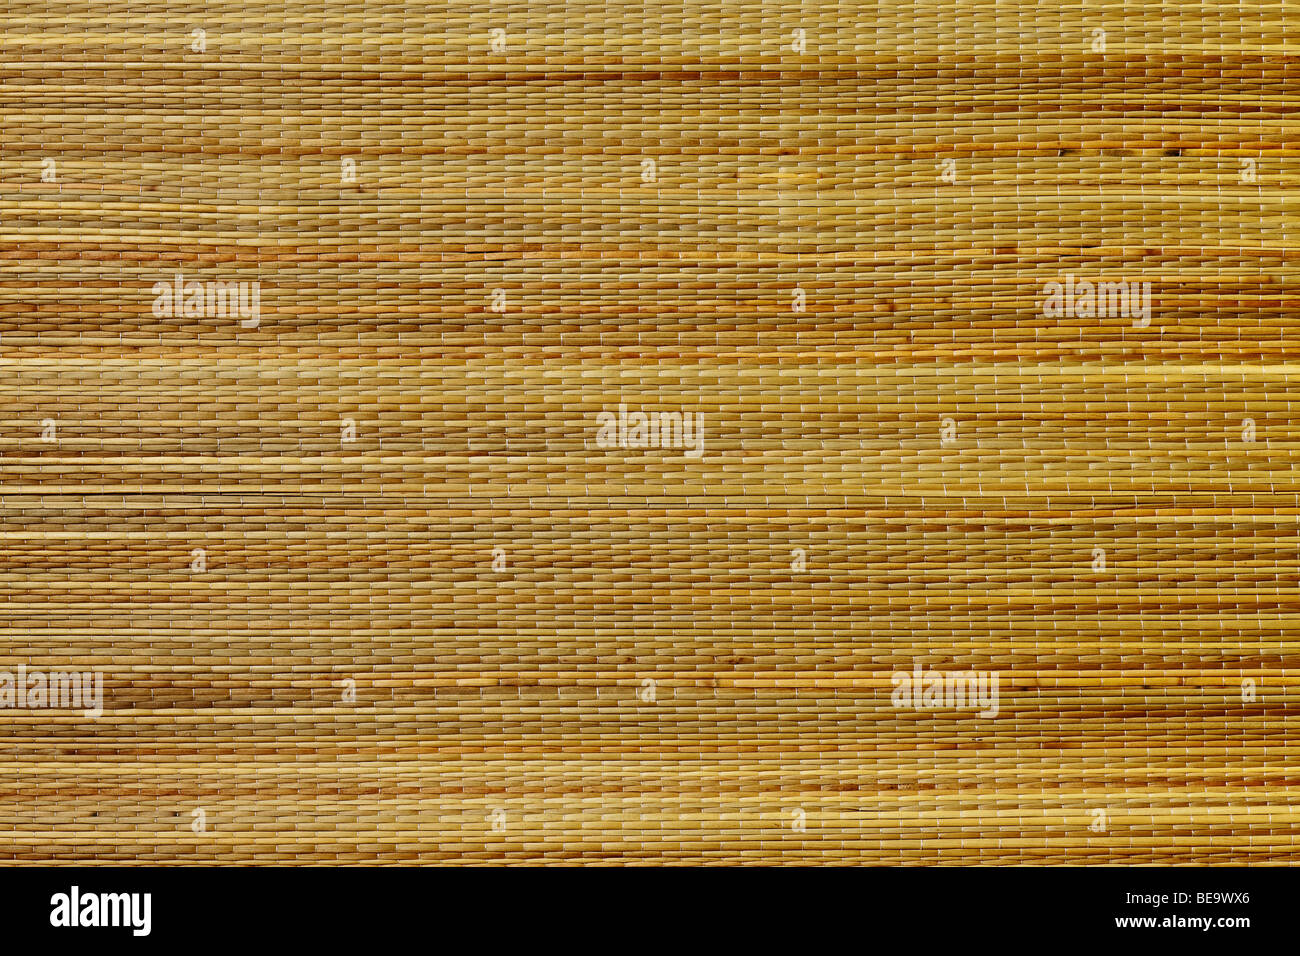 grass mat background in tan and brown tones - Stock Image